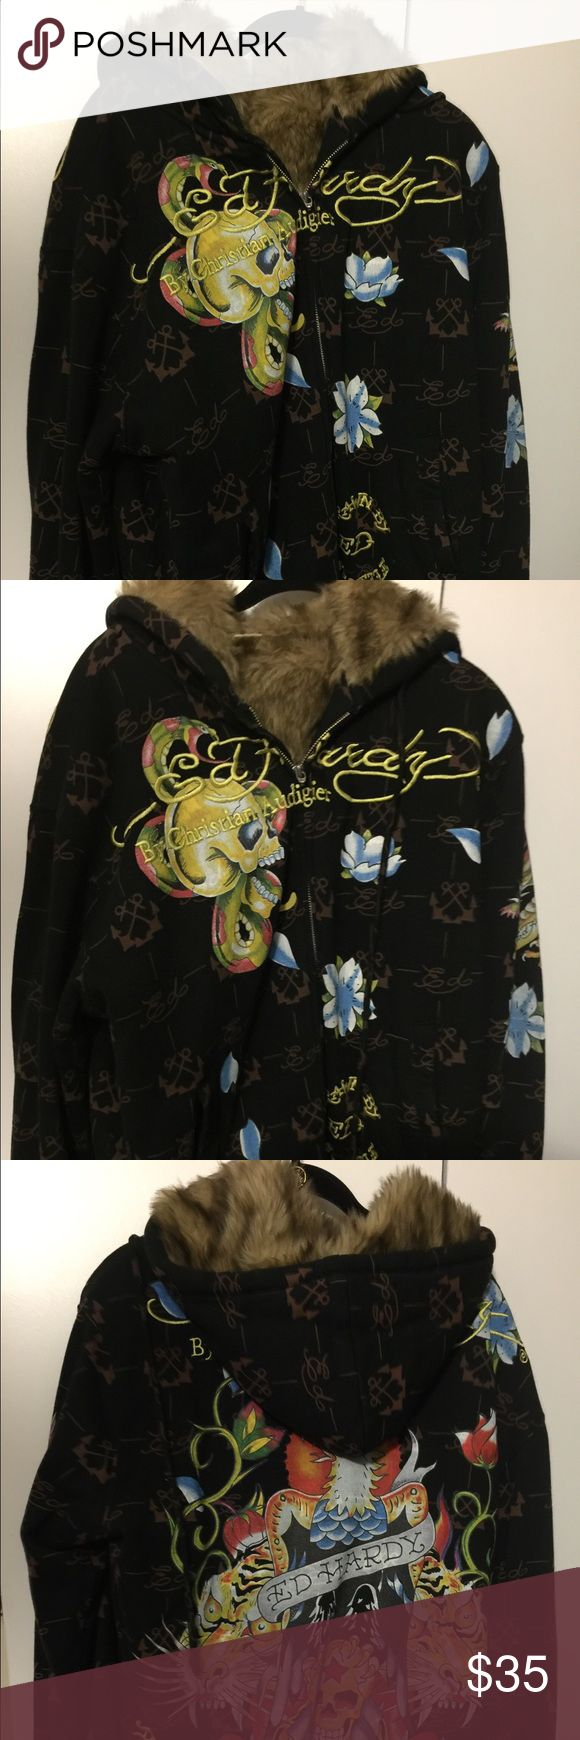 Ed hardy fur lined hoodie Fur lined ver good condition, but missing string in hood and zipper pull, zipper works fine Ed Hardy Shirts Sweatshirts & Hoodies